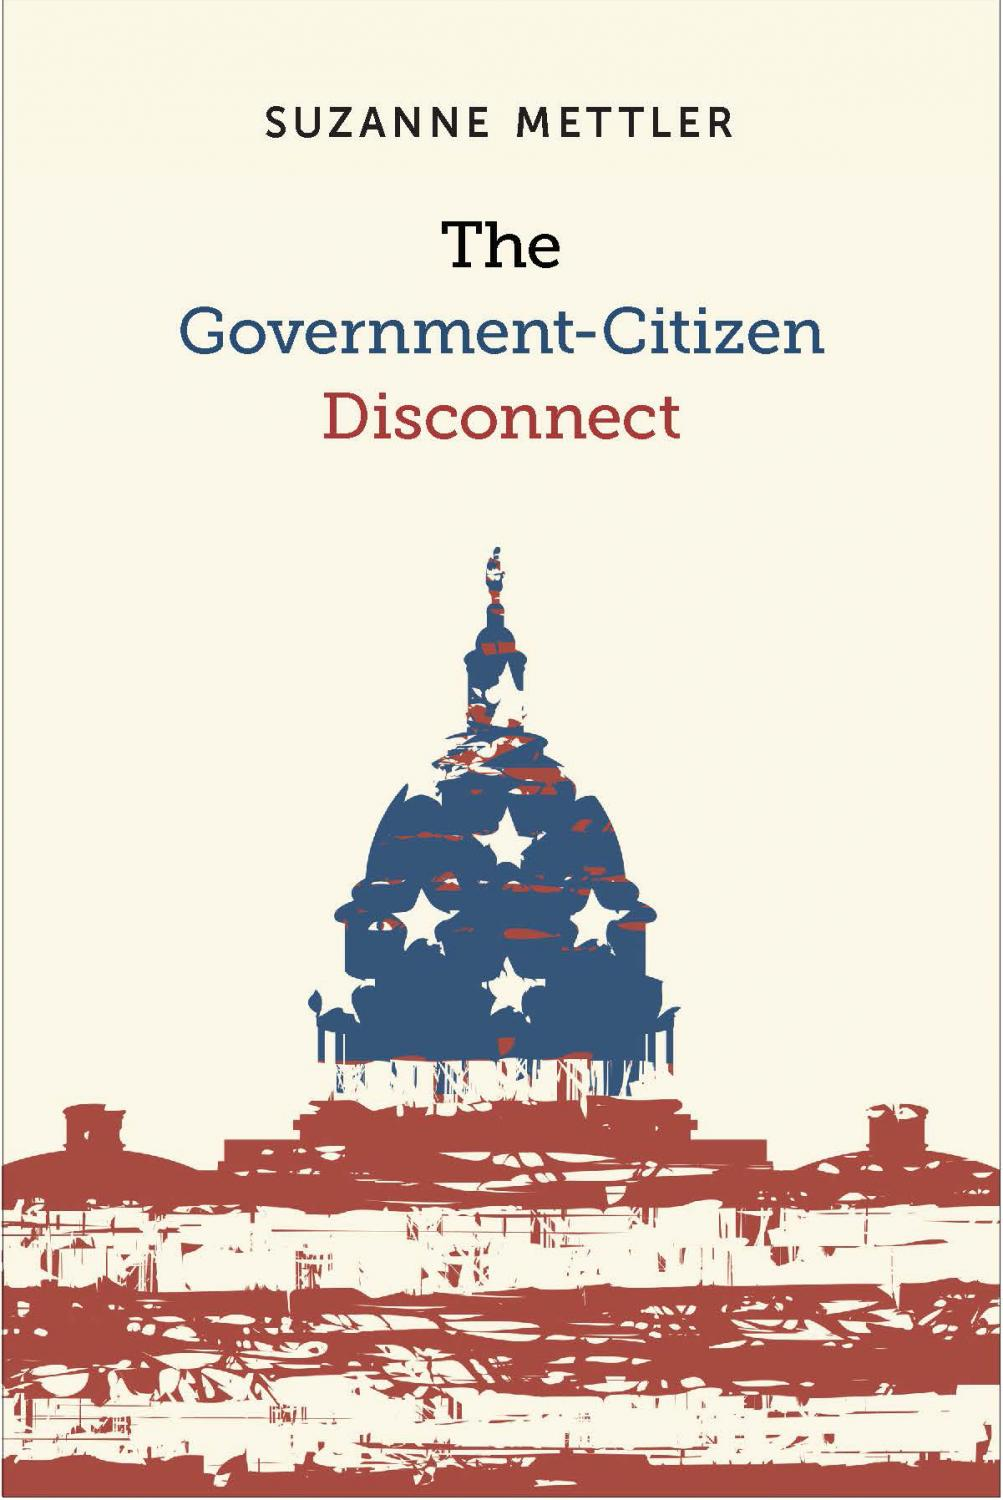 The Government-Citizen Disconnect by Suzanne Mettler